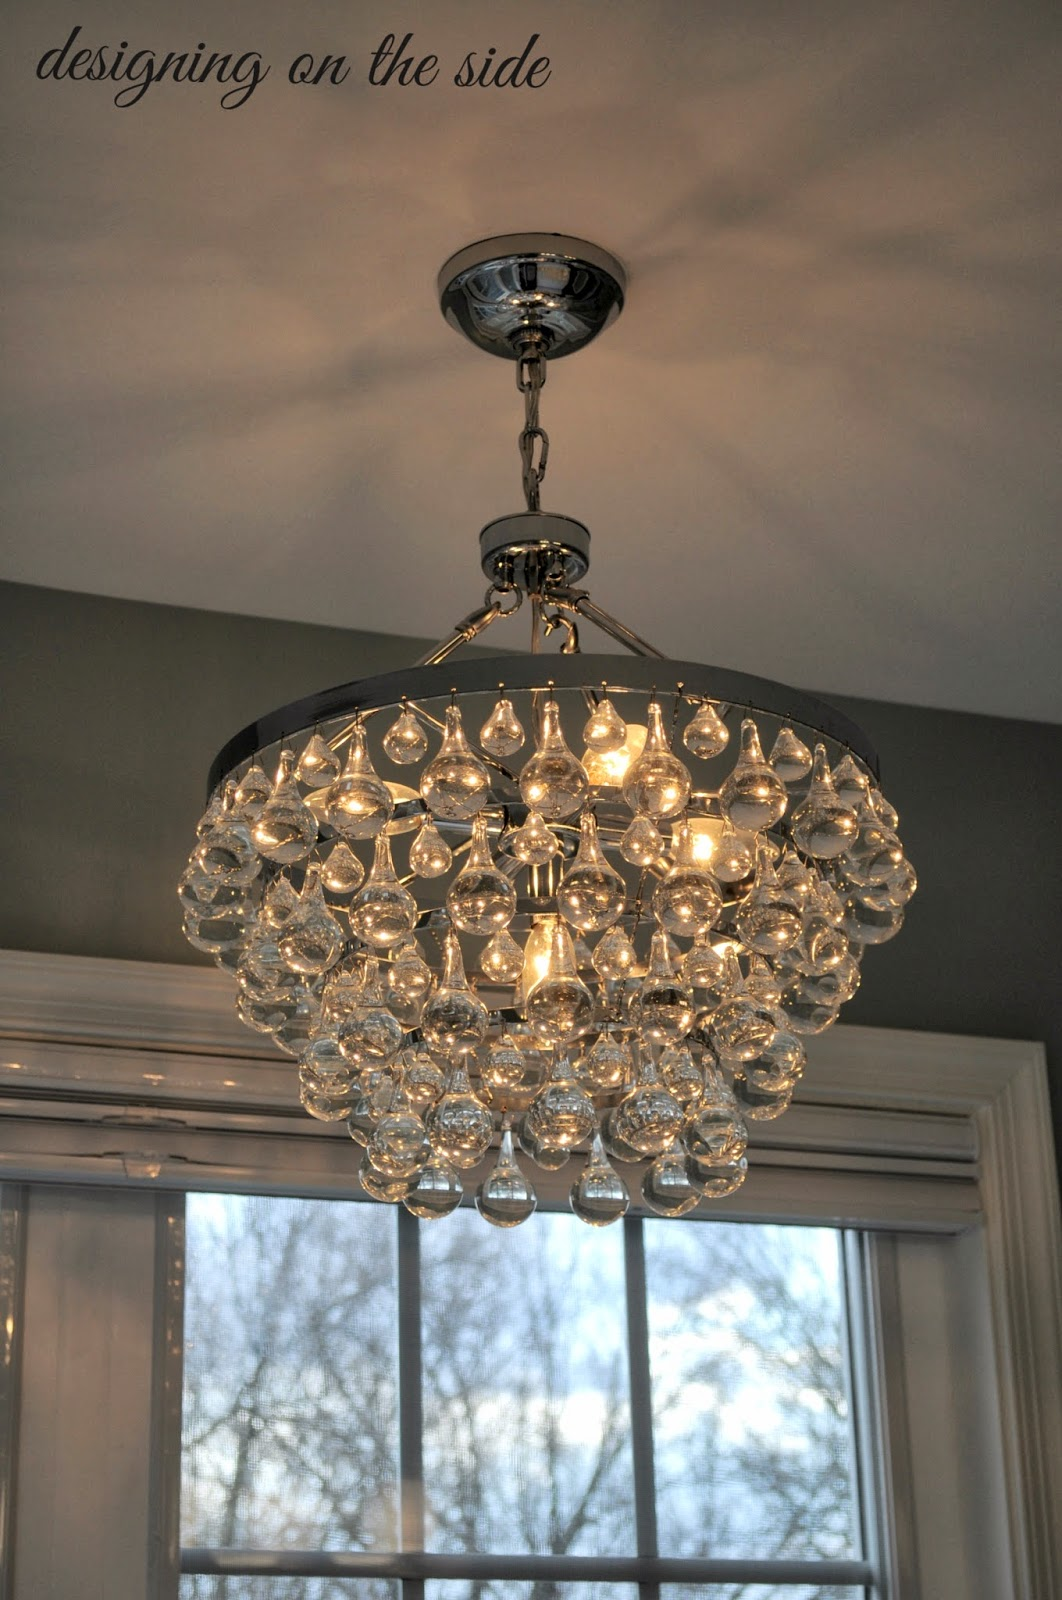 Designing on the side master bath reveal - Bathroom chandeliers crystal ...